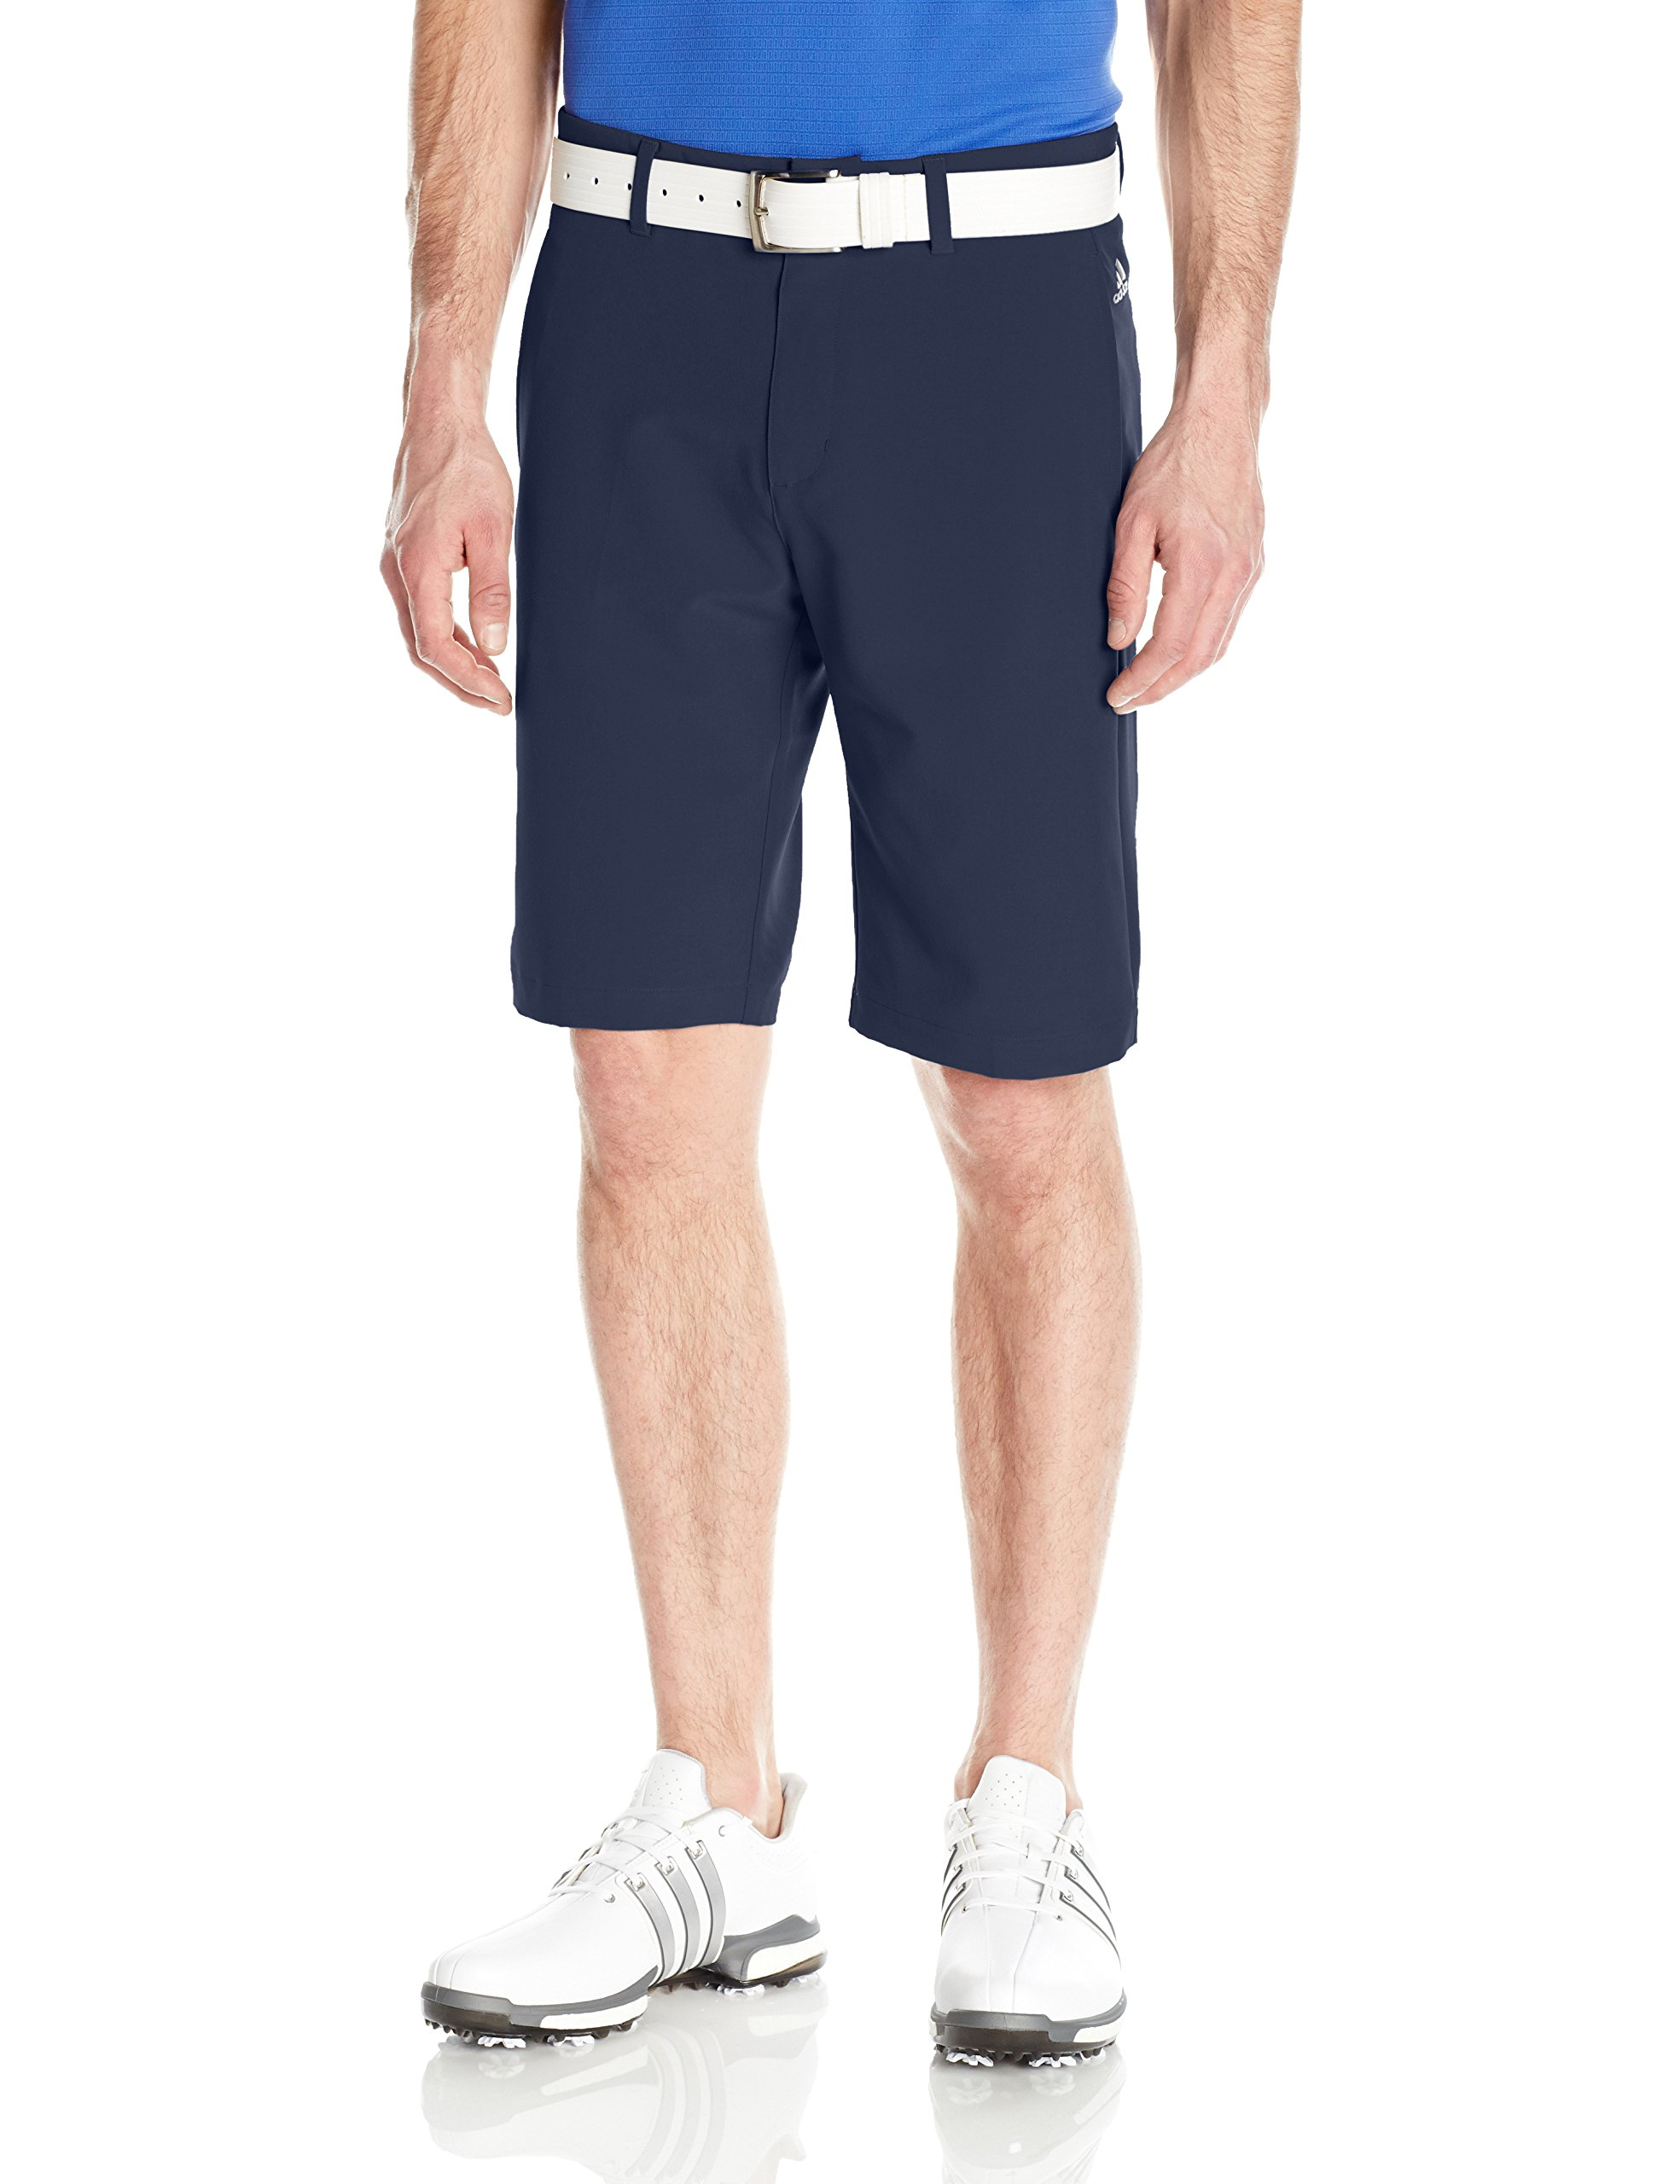 adidas Golf Ultimate+ 3-Stripes Short, Navy, 35'' by adidas